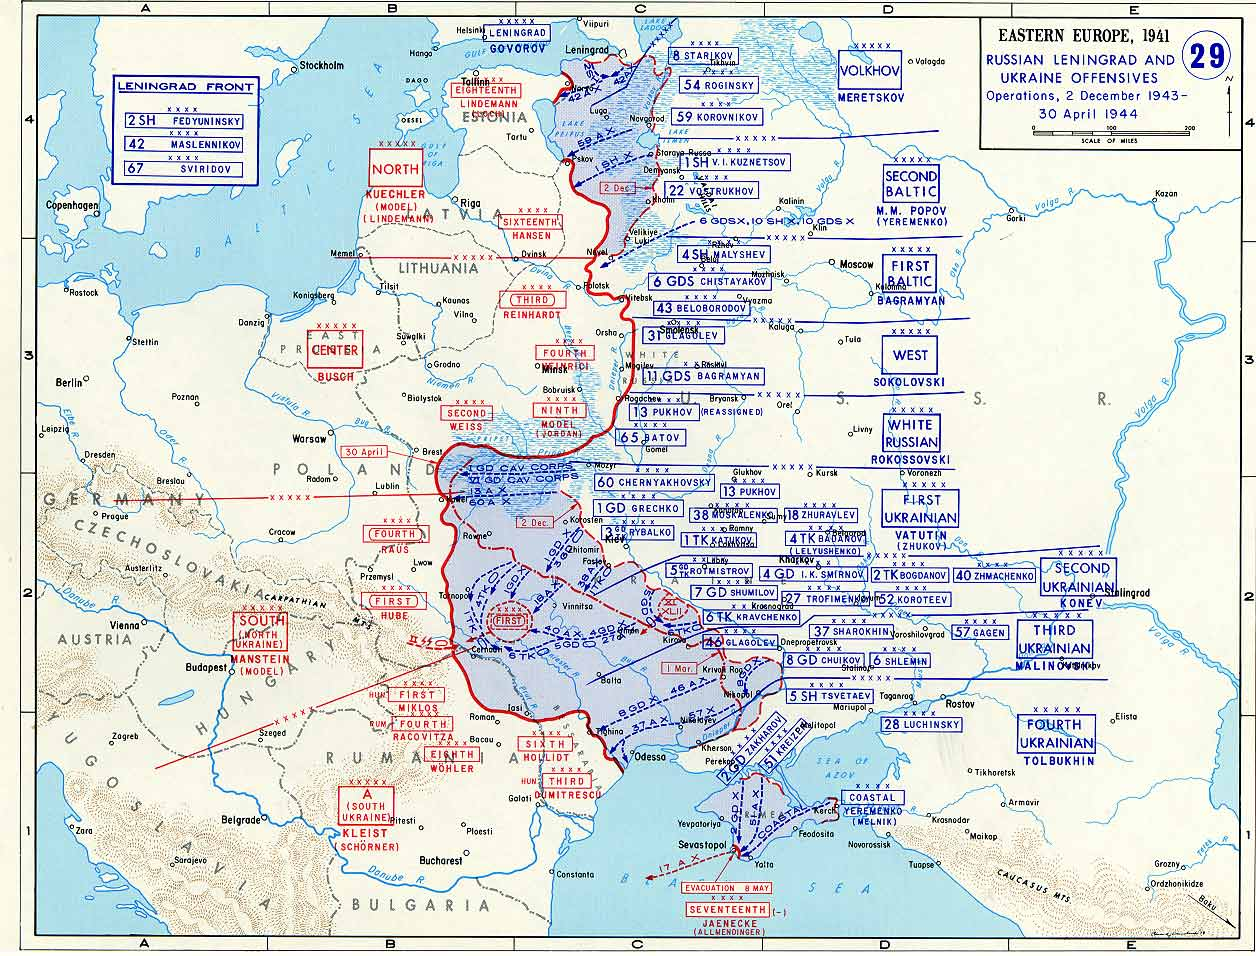 Map of leningrad and ukraine offensives december 1943 april 1944 wwii war theatre maps leningrad and ukraine offensives gumiabroncs